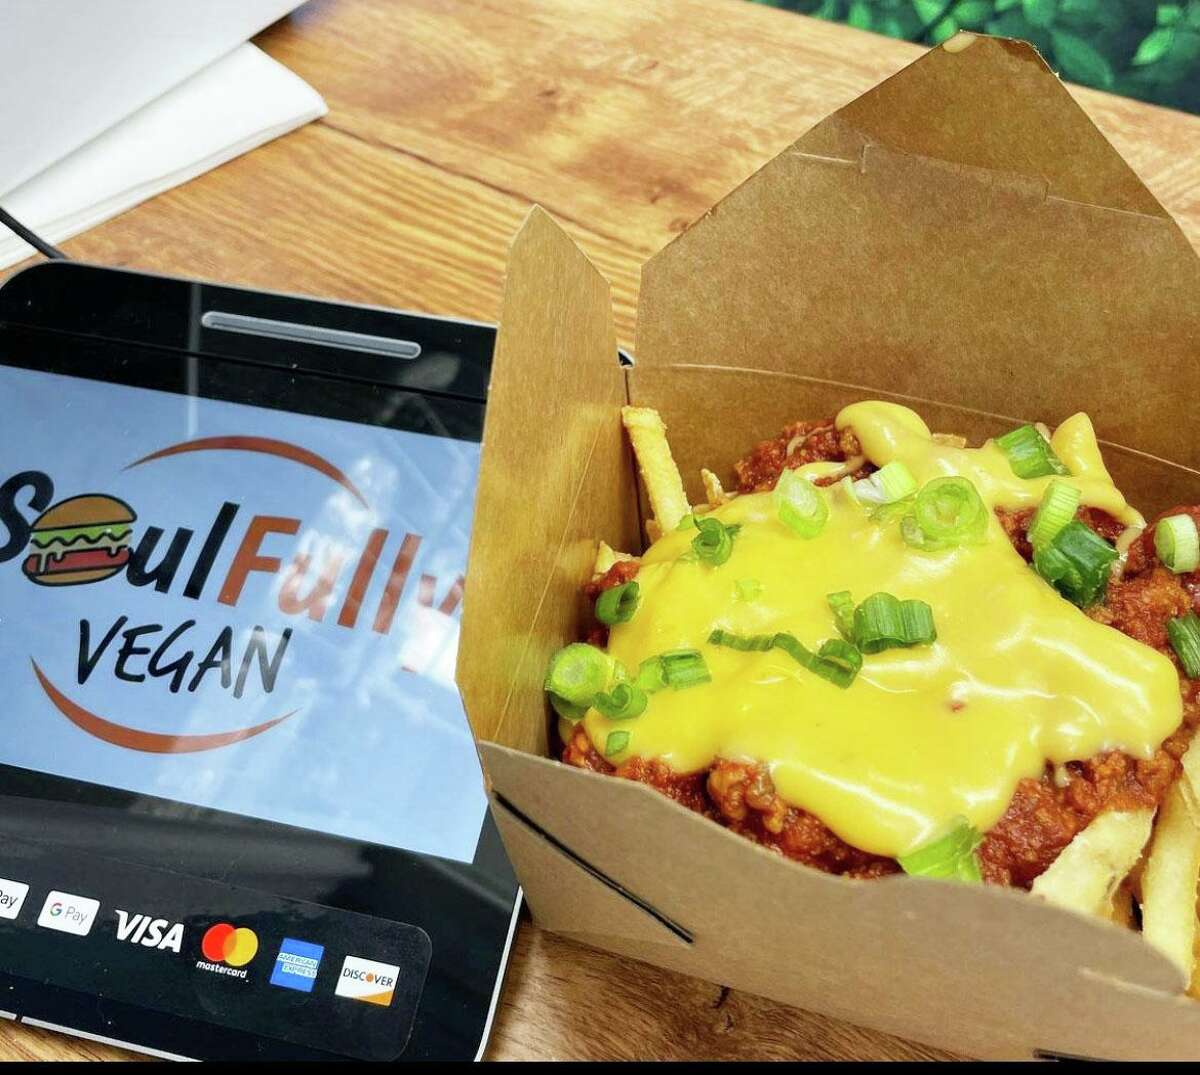 Middletown's SoulFully Vegan food truck uses Beyond Meat to make its spicy PB&J burger, chili cheese hot dogs, and chili cheese fries.